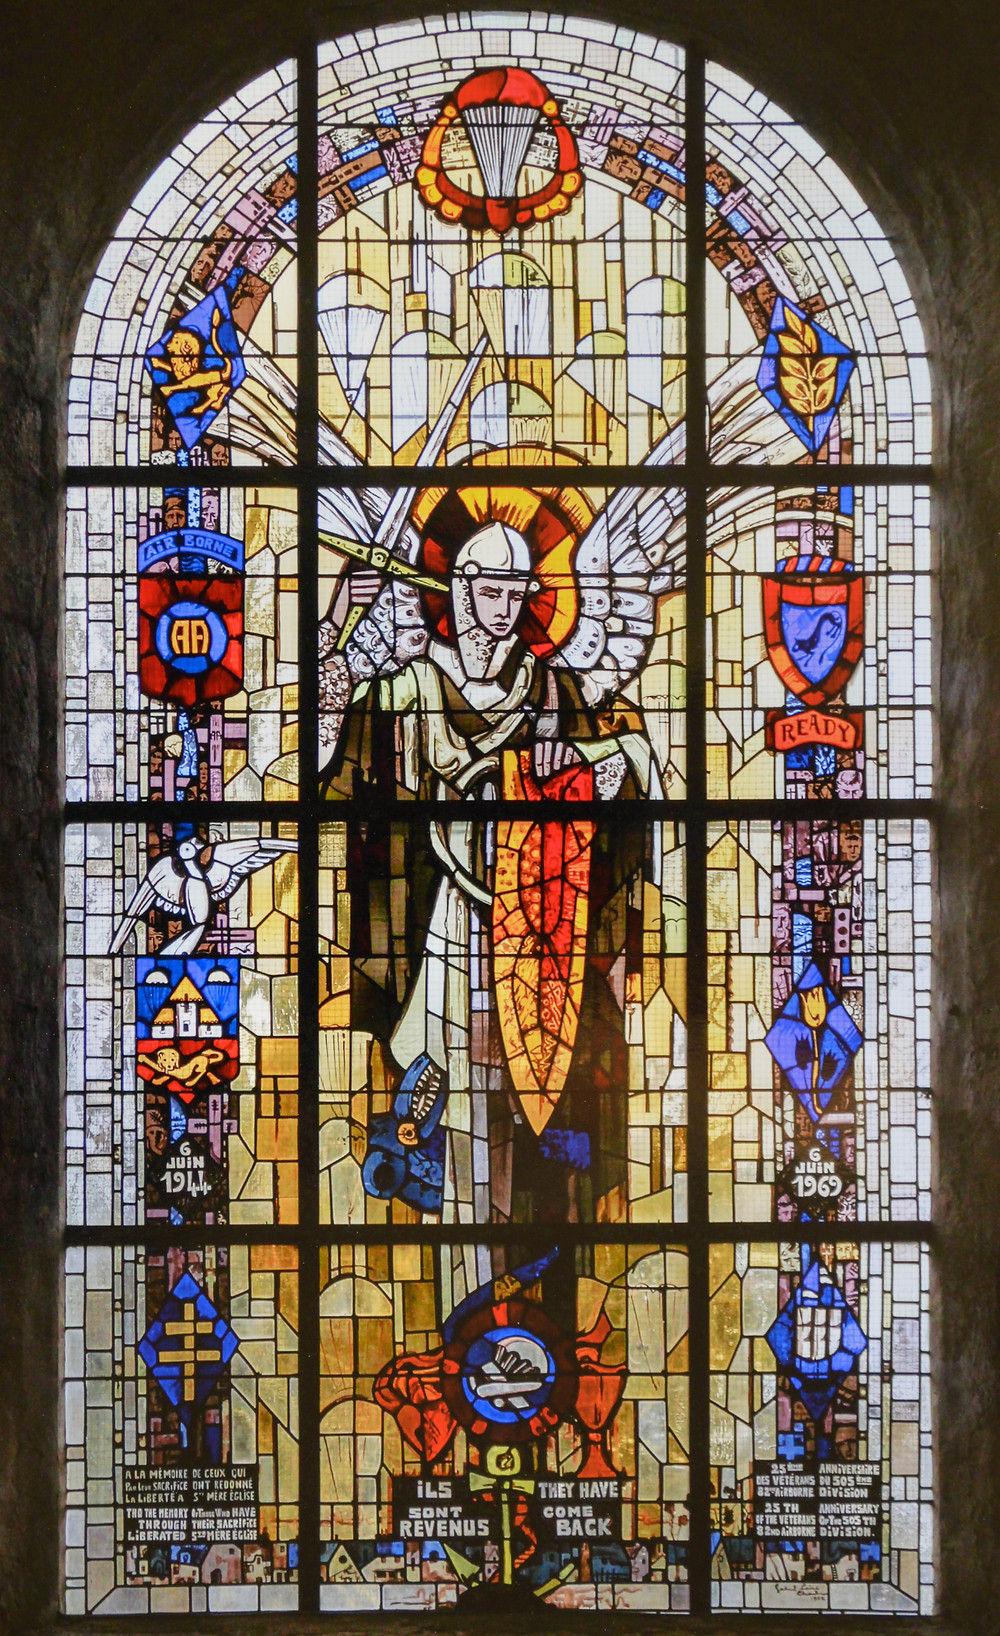 st. mere English stained glass window in france with st. michael patron saint of paratroopers copyright photo by brian guenthenspberger silveroakart